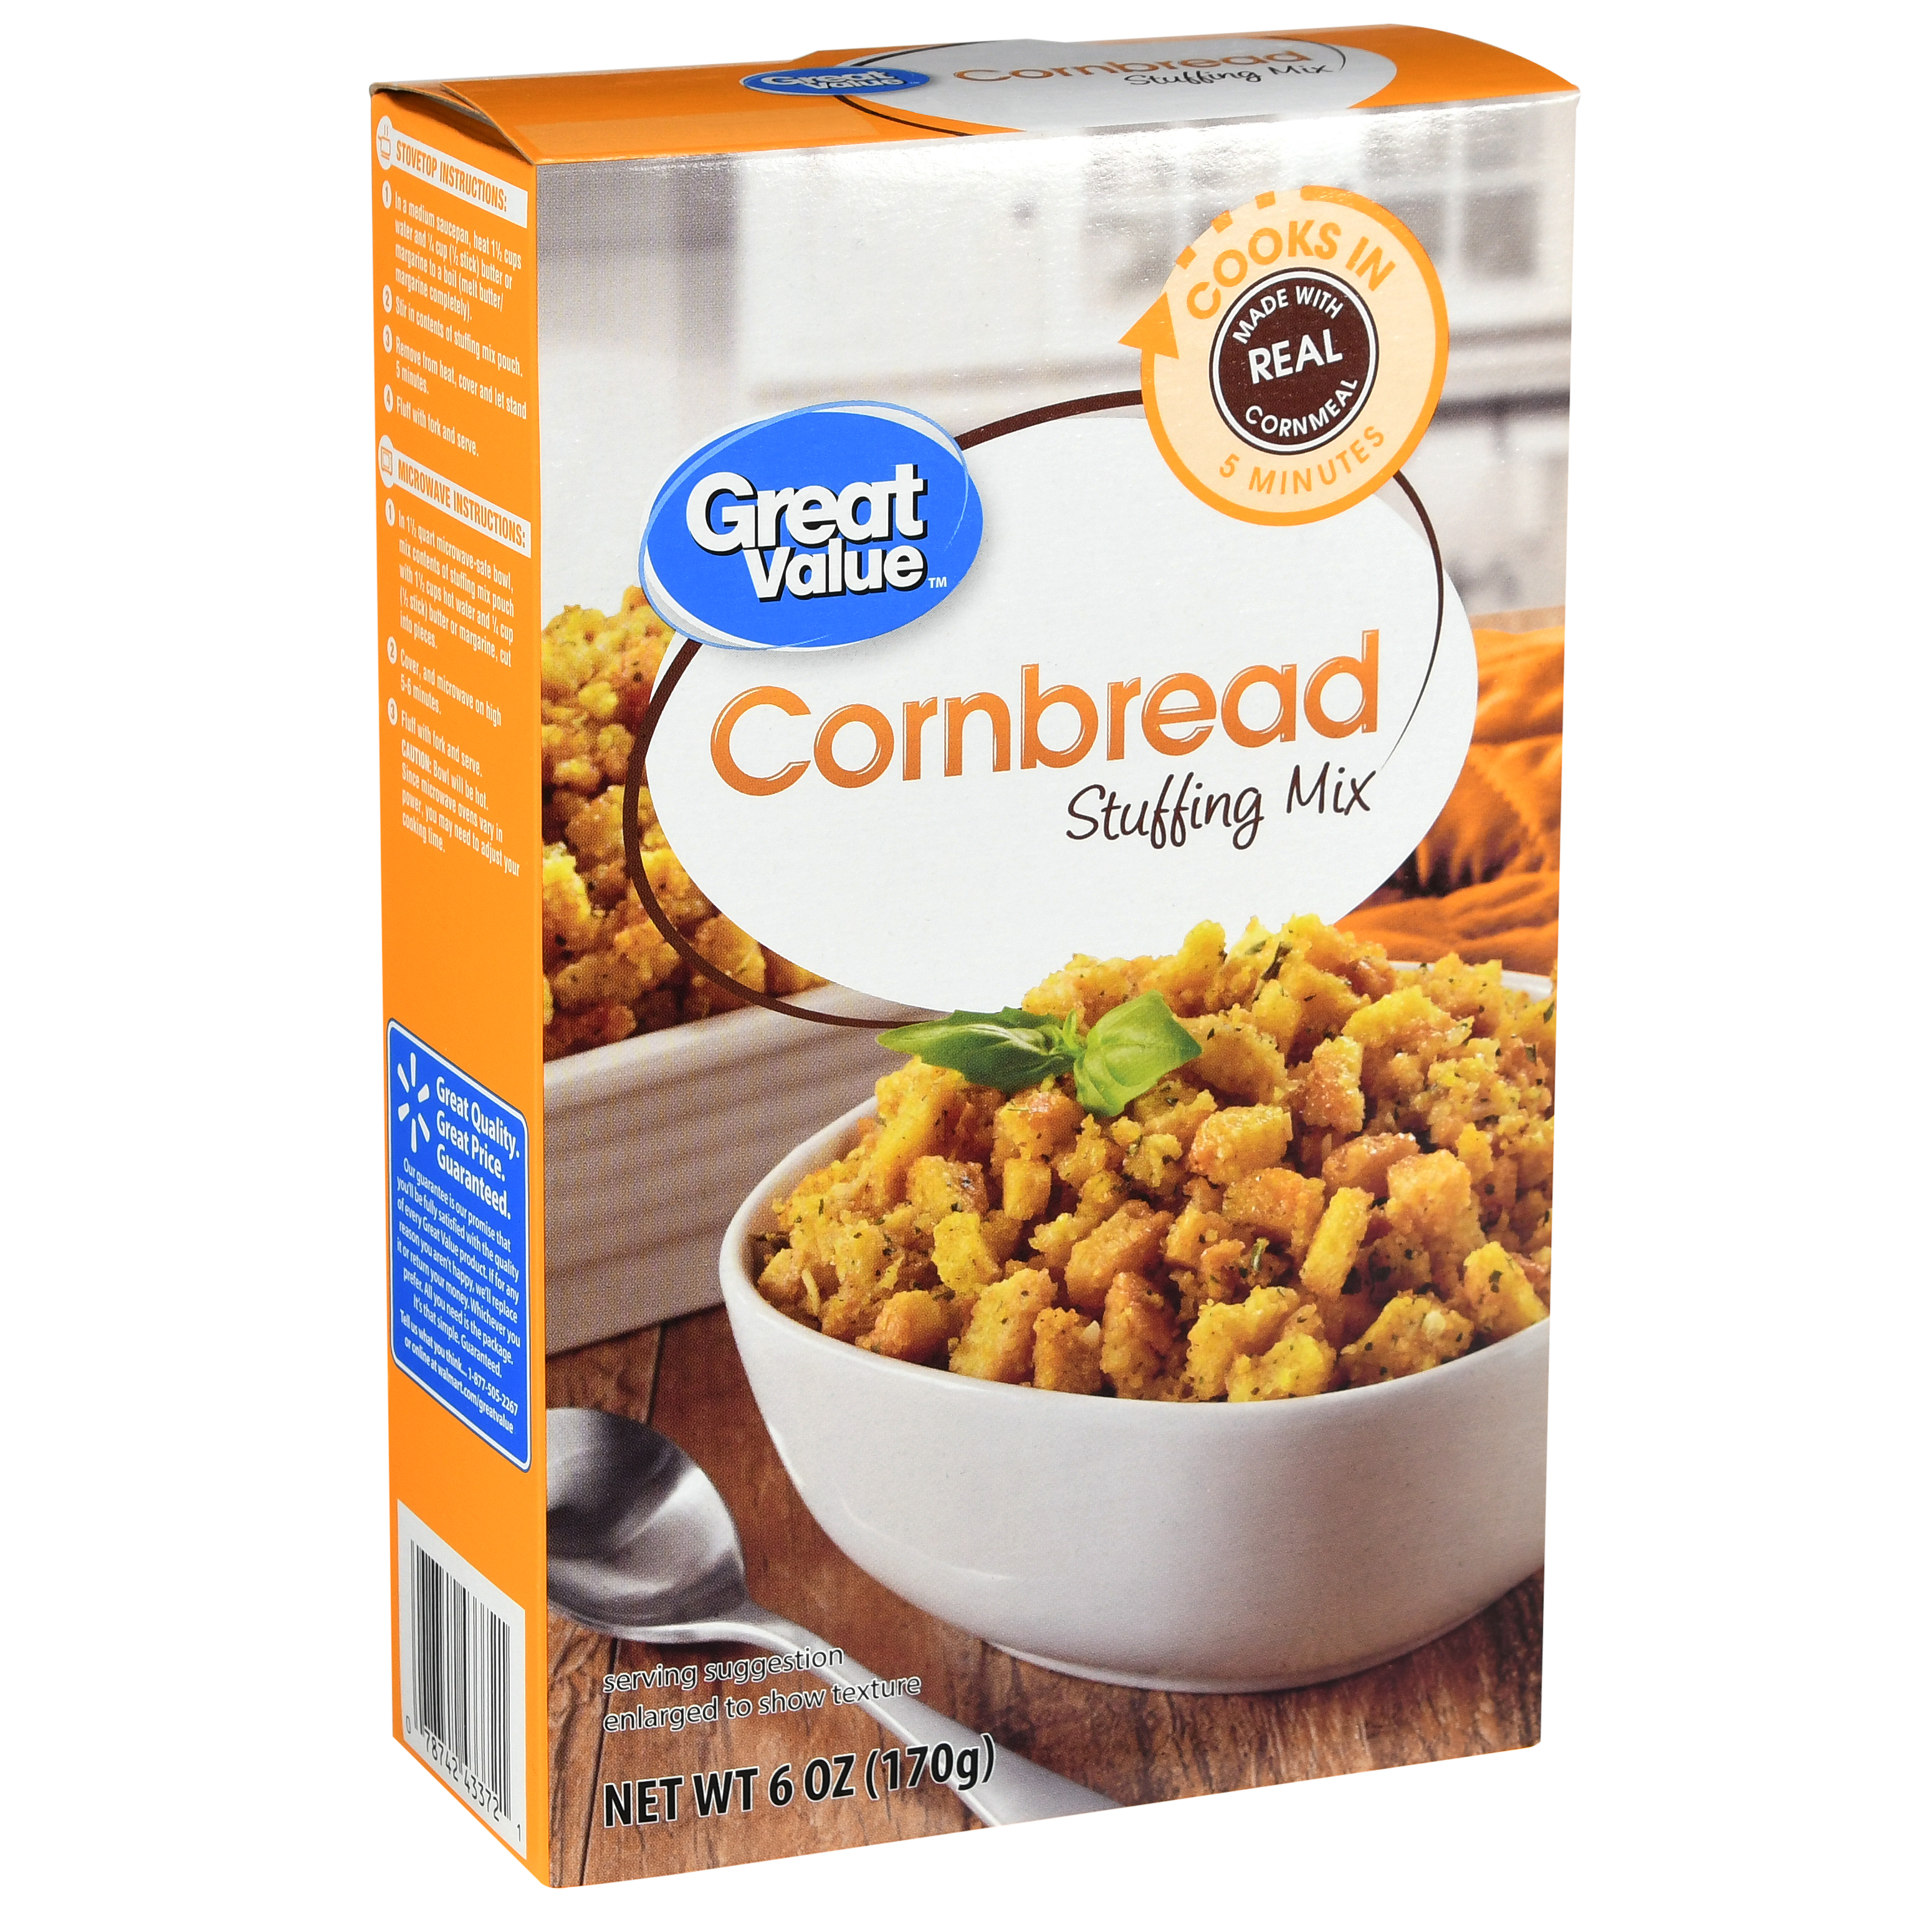 Great Value Cornbread Stuffing Mix, 6 oz